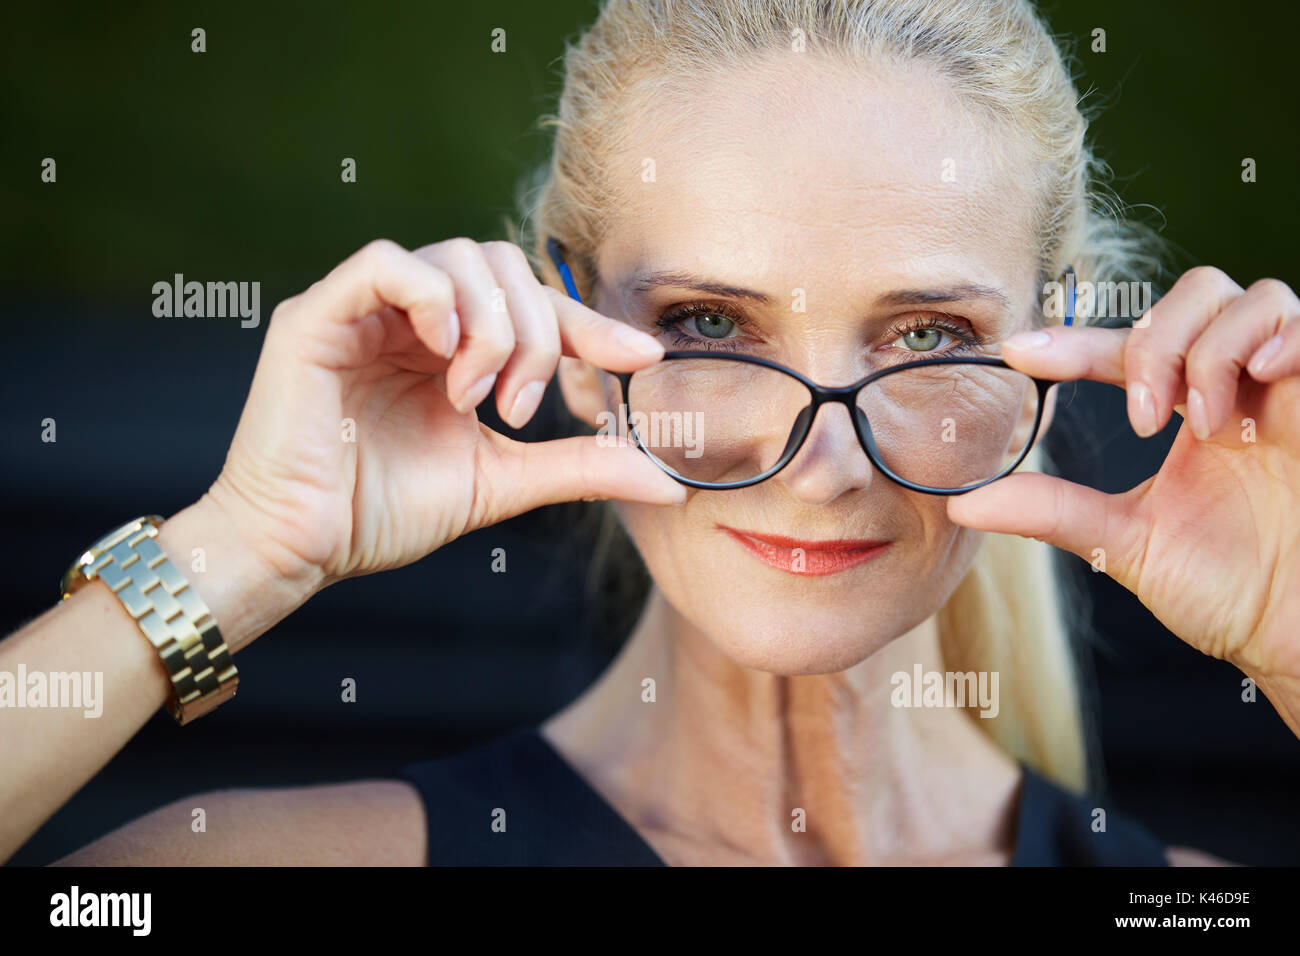 Close up portrait of glad businesswoman holding spectacles. - Stock Image